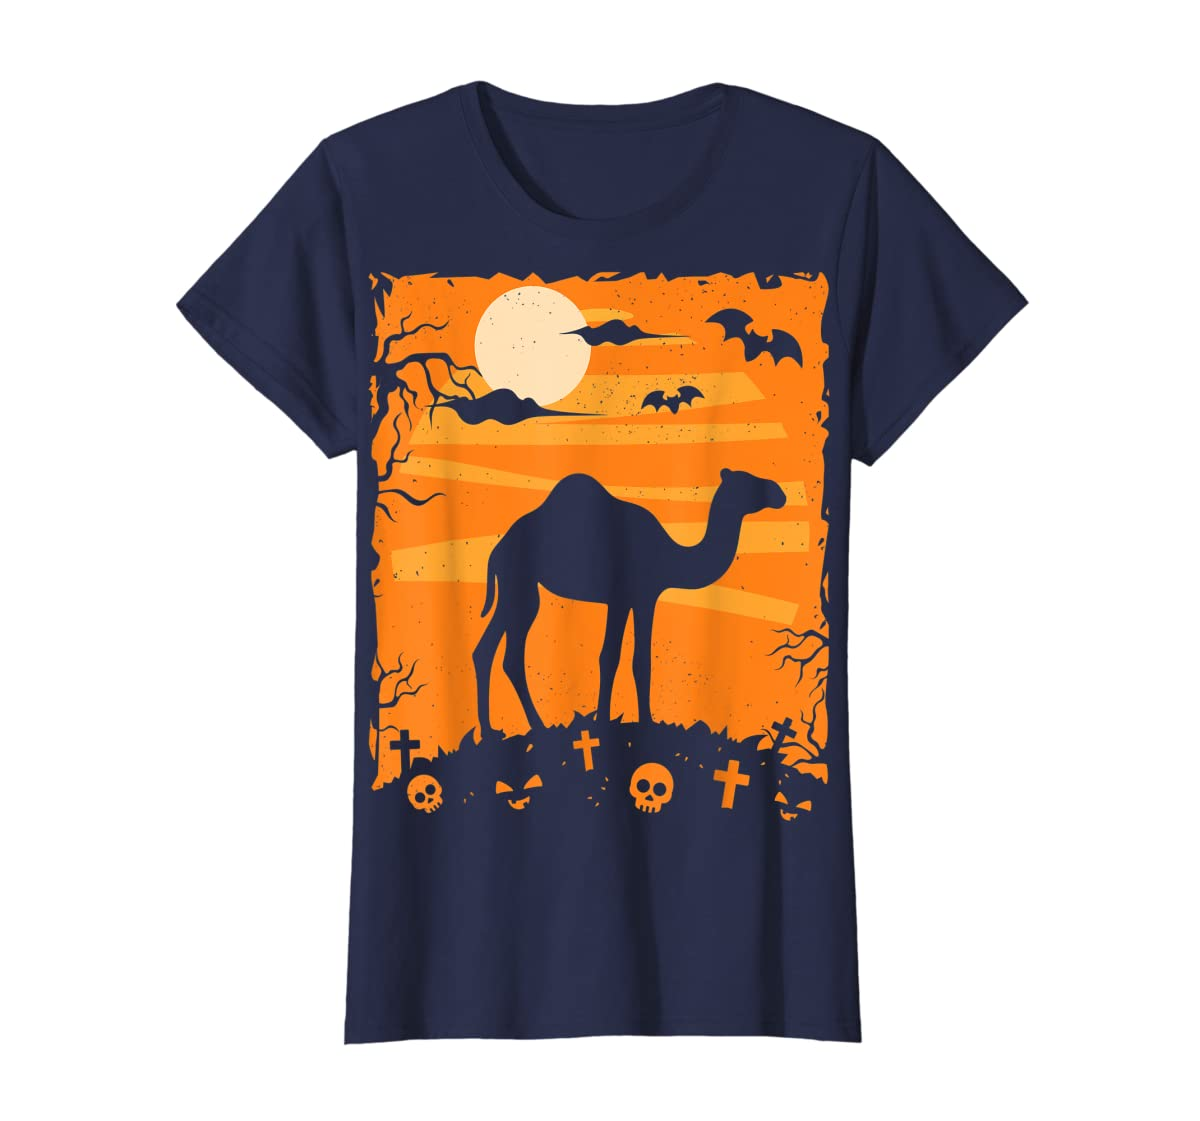 Camel Halloween Costume Animal Funny Pumpkin Outfit Gift T-Shirt-Women's T-Shirt-Navy